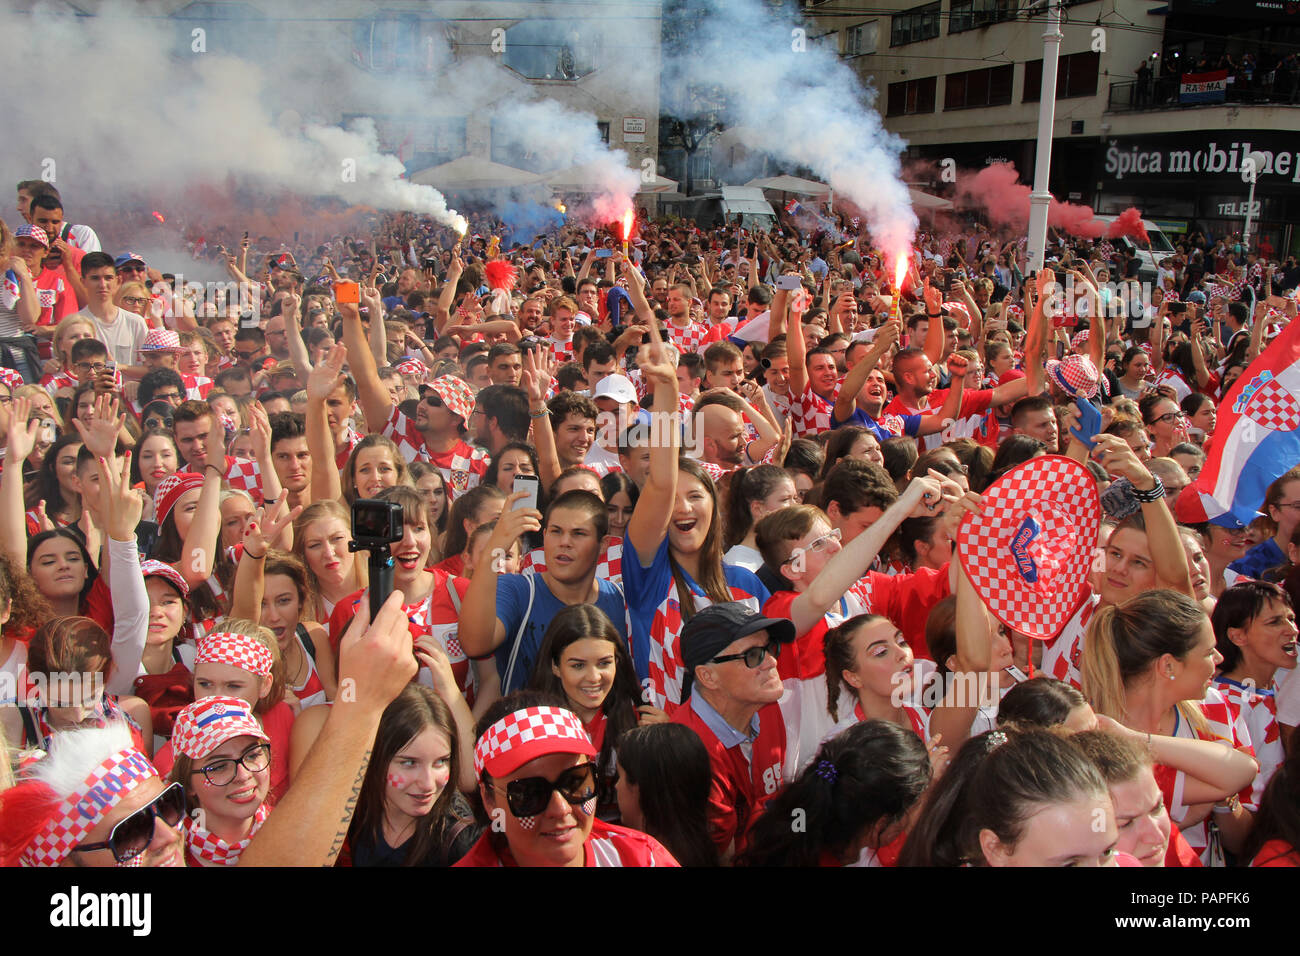 ZAGREB, CROATIA - JULY 15 Croatian football fans on the Ban Jelacic Square, watching 2018 FIFA WORLD CUP RUSSIA match France vs Croatia on July 15, 20 Stock Photo